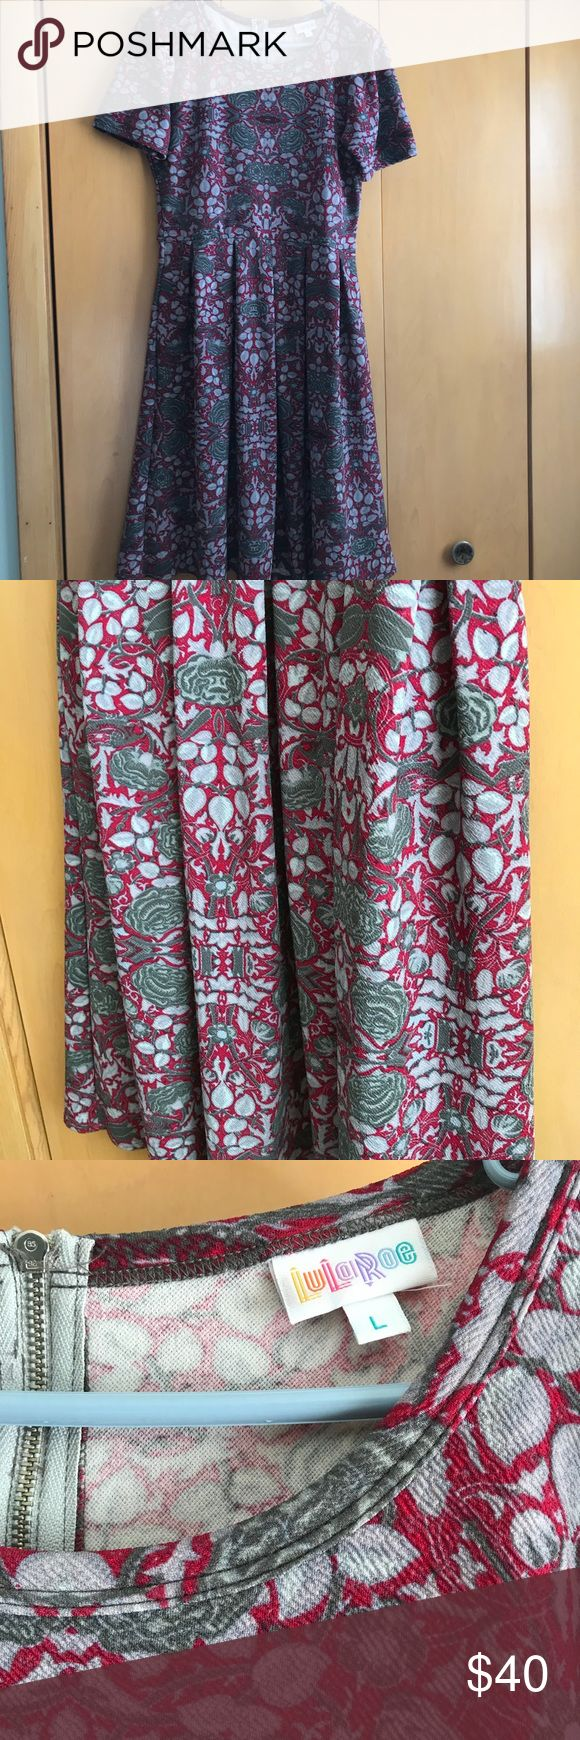 Lularoe Amelia. Size L. Worn Once. Size L. Amelia from Lularoe. Worn one time. Like new. Price negotiable. LuLaRoe Dresses Midi